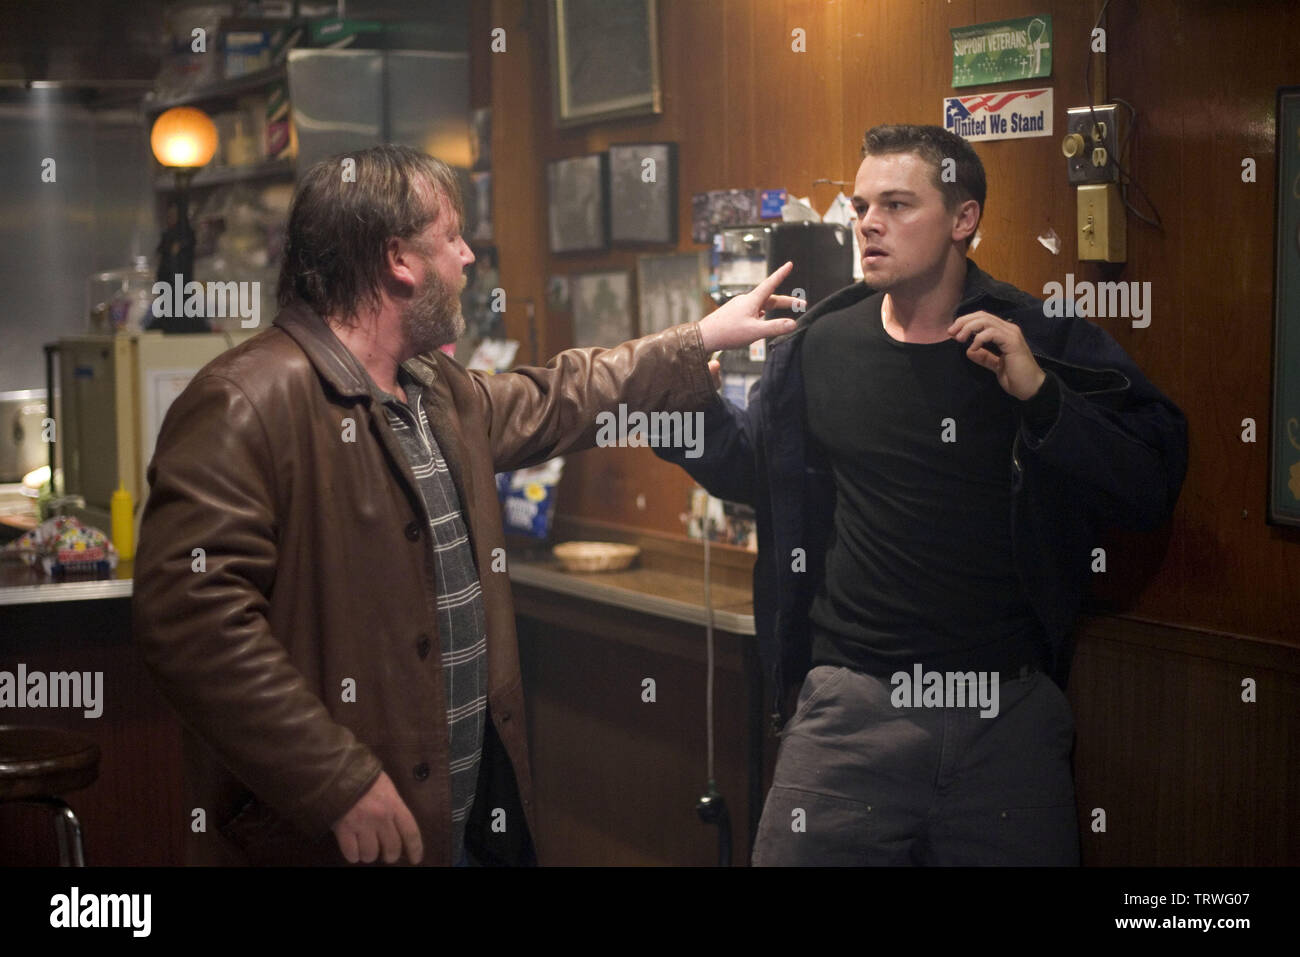 LEONARDO DICAPRIO and RAY WINSTONE in THE DEPARTED (2006). Copyright: Editorial use only. No merchandising or book covers. This is a publicly distributed handout. Access rights only, no license of copyright provided. Only to be reproduced in conjunction with promotion of this film. Credit: WARNER BROS PICTURES/VERTIGO ENTERTAINMENT/INITIAL ENTERTAIN / COOPER, ANDREW / Album Stock Photo